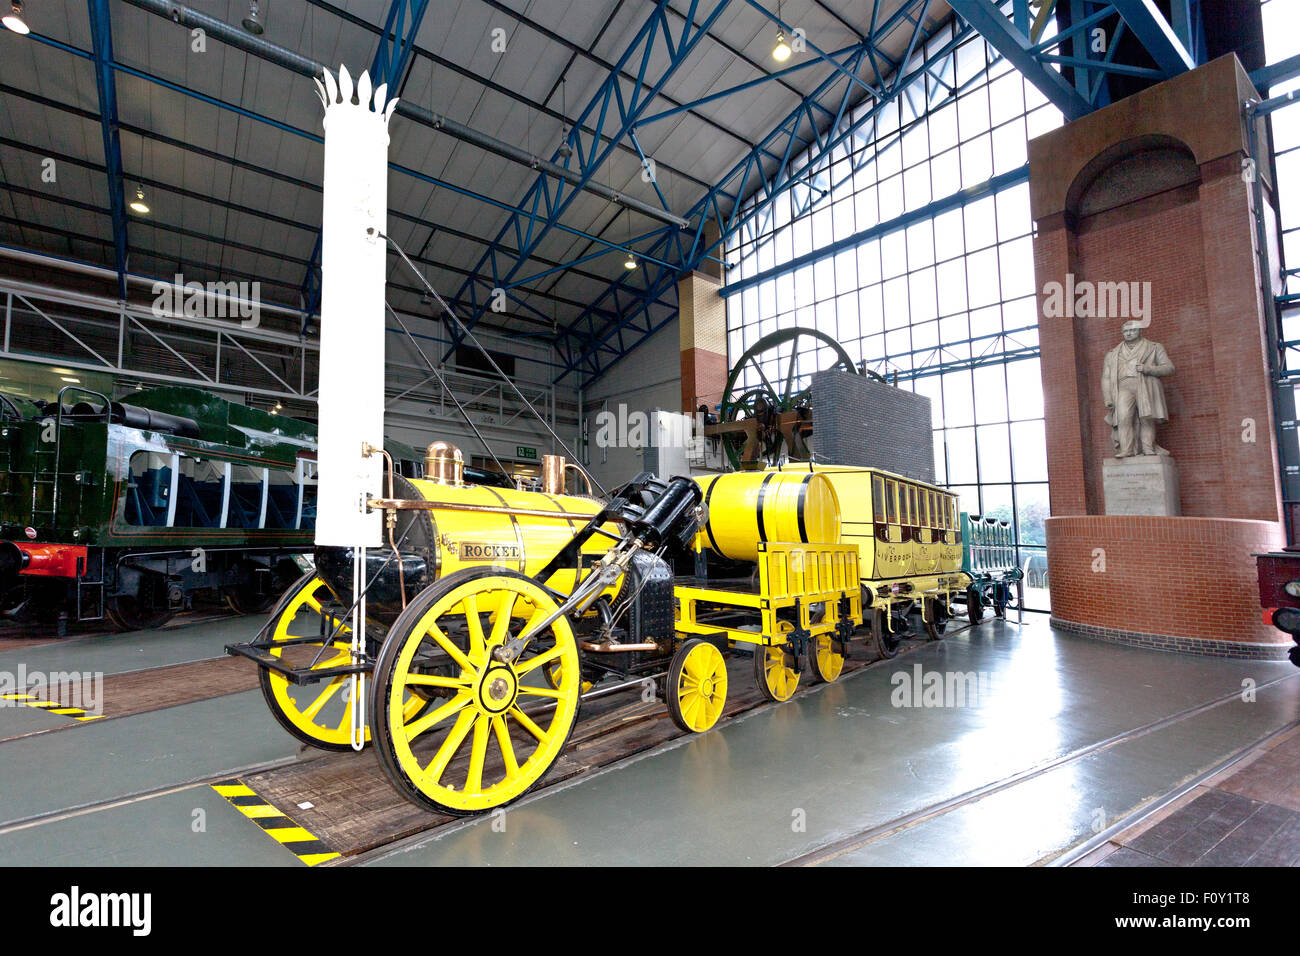 A replica of George Stephenson's 'Rocket' in the Main Hall of the National Railway Museum, York, England, - Stock Image